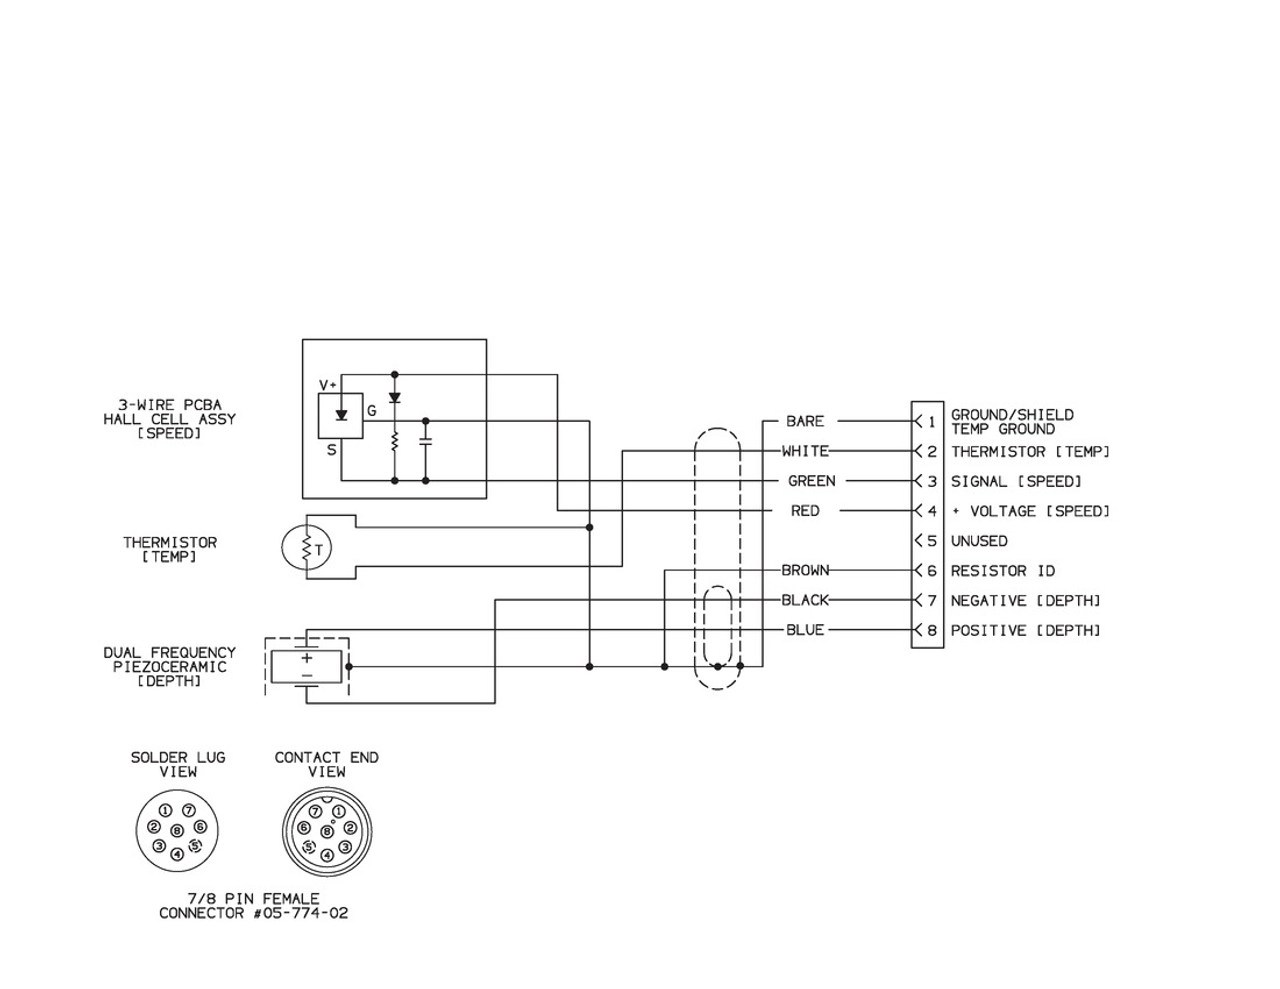 wrg 2785 thermistor wiring diagram dual depth speed temperature p66 600w transducers with [ 1280 x 989 Pixel ]